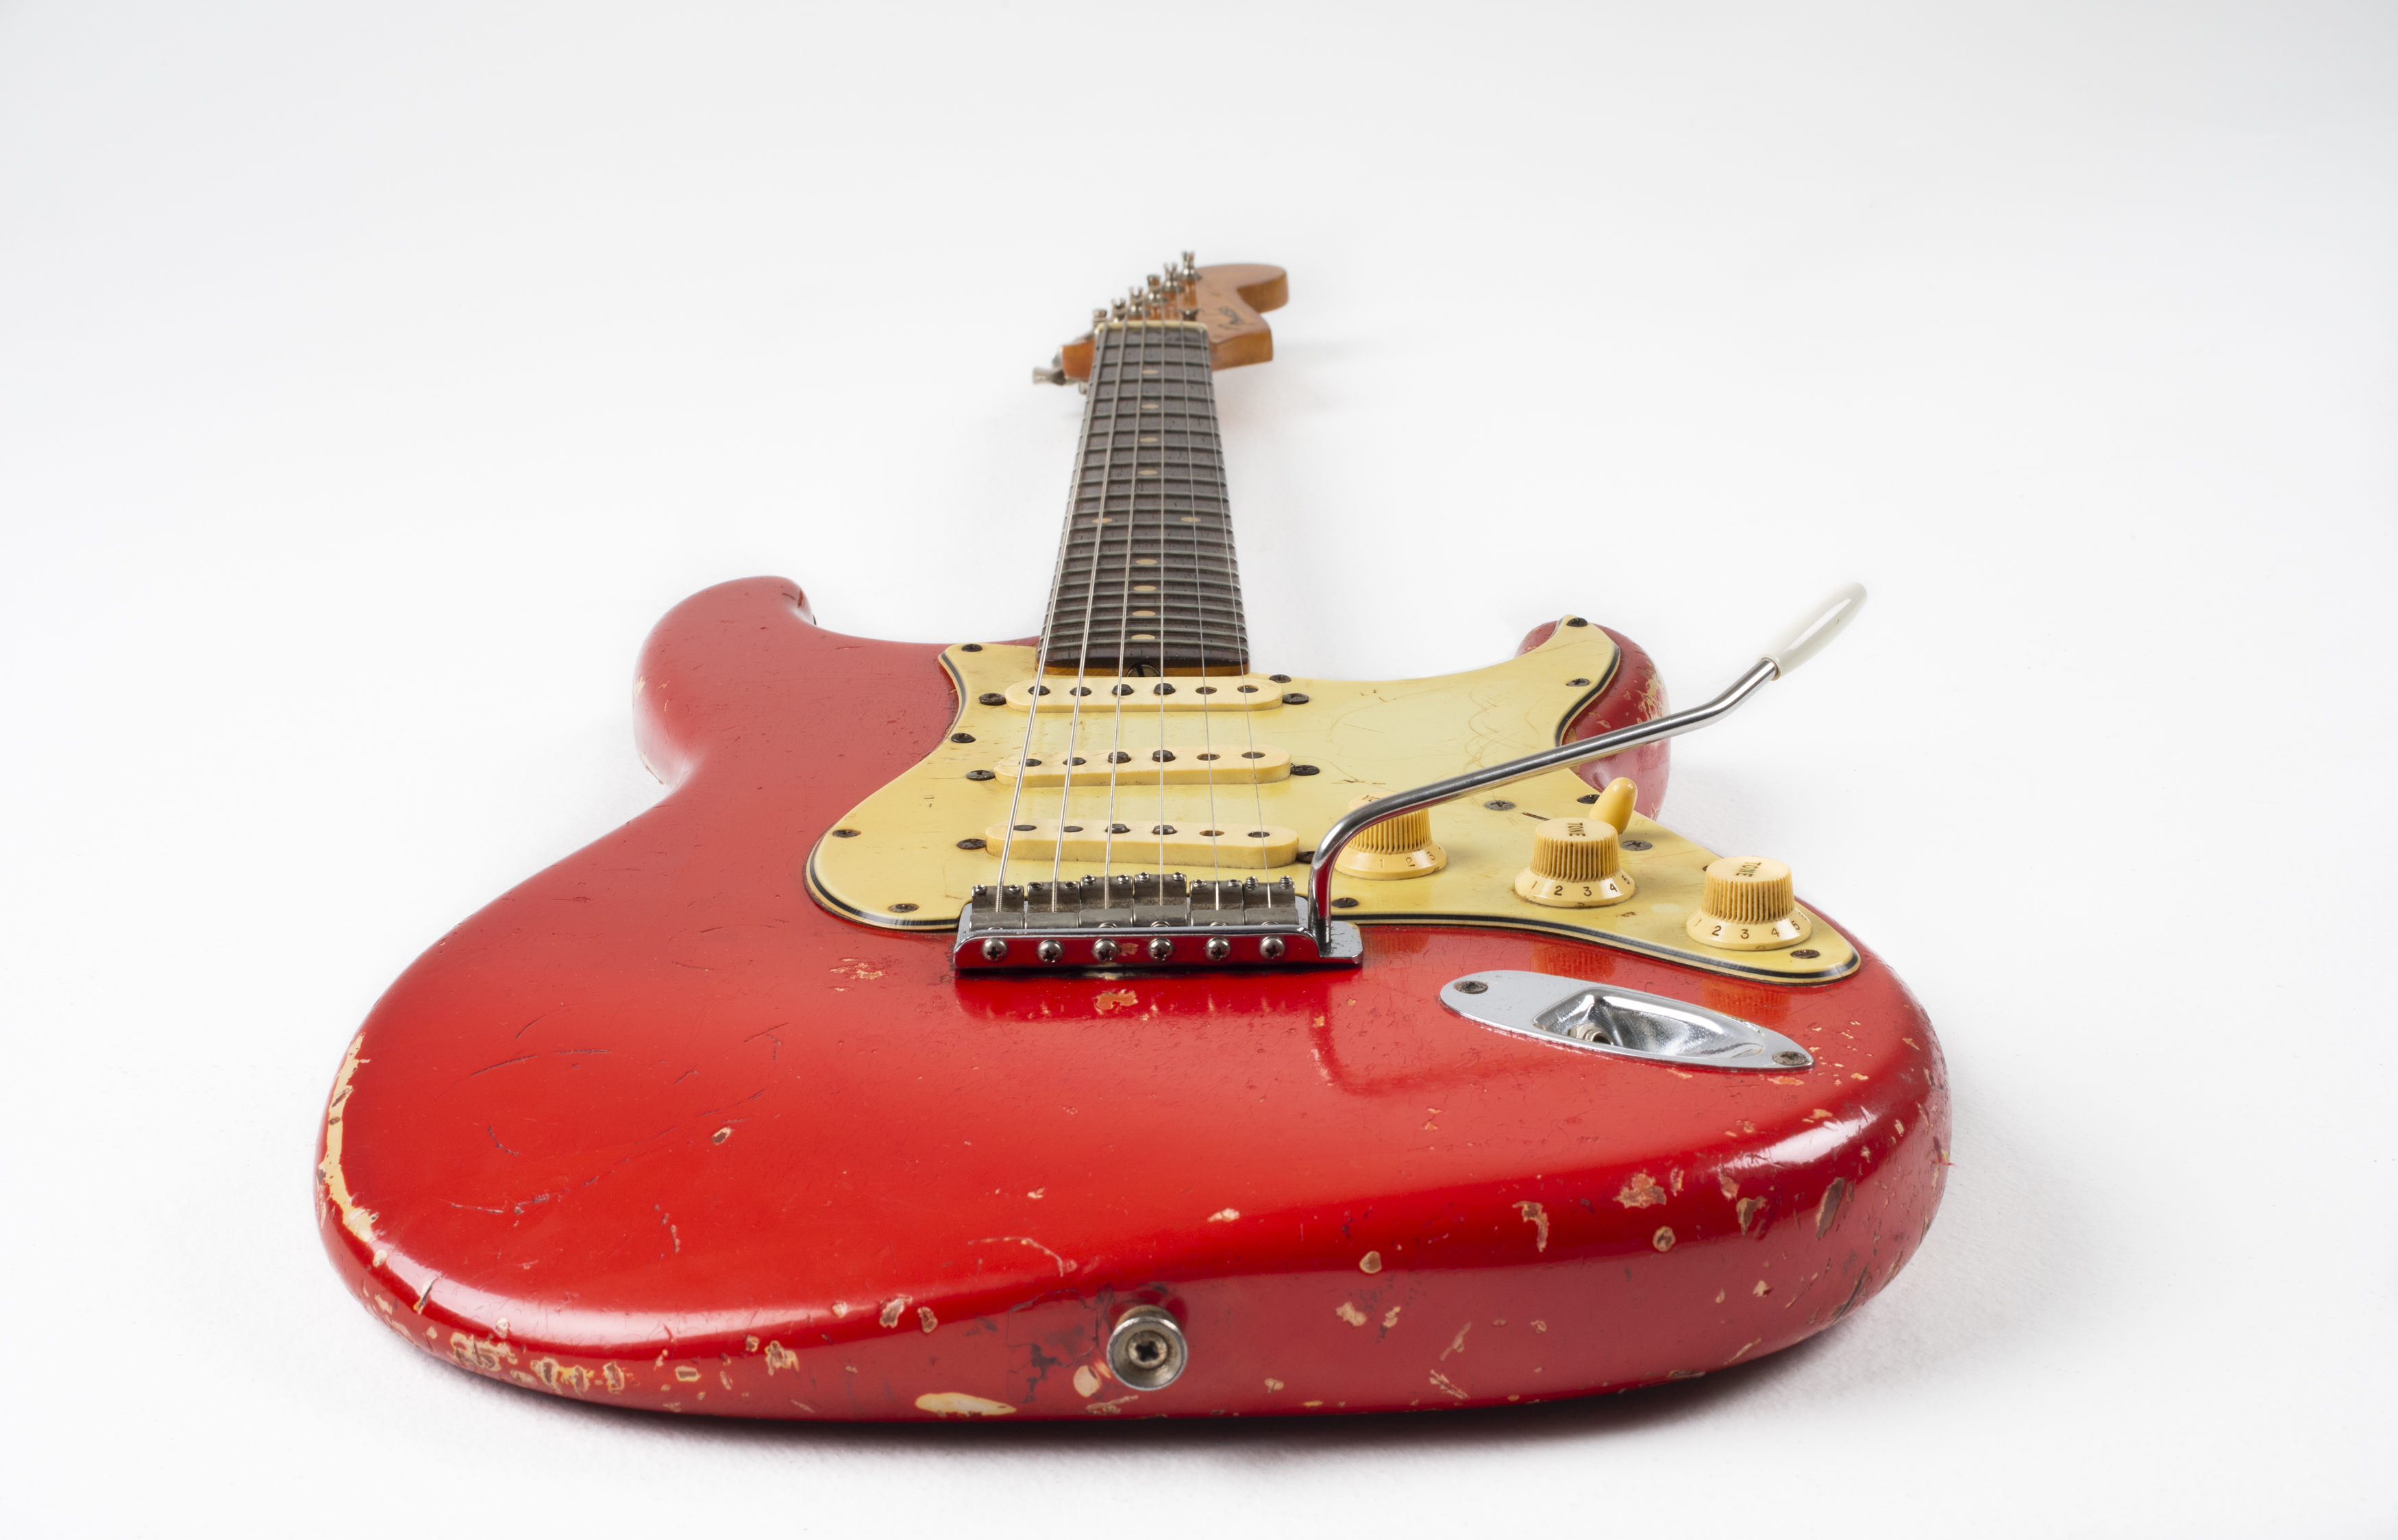 Electric guitar with 'Dakota red' body, cream pick-guard and dark rosewood fret-board. The guitar is viewed from the body along the neck towards the headstock. The body has severe road-wear.